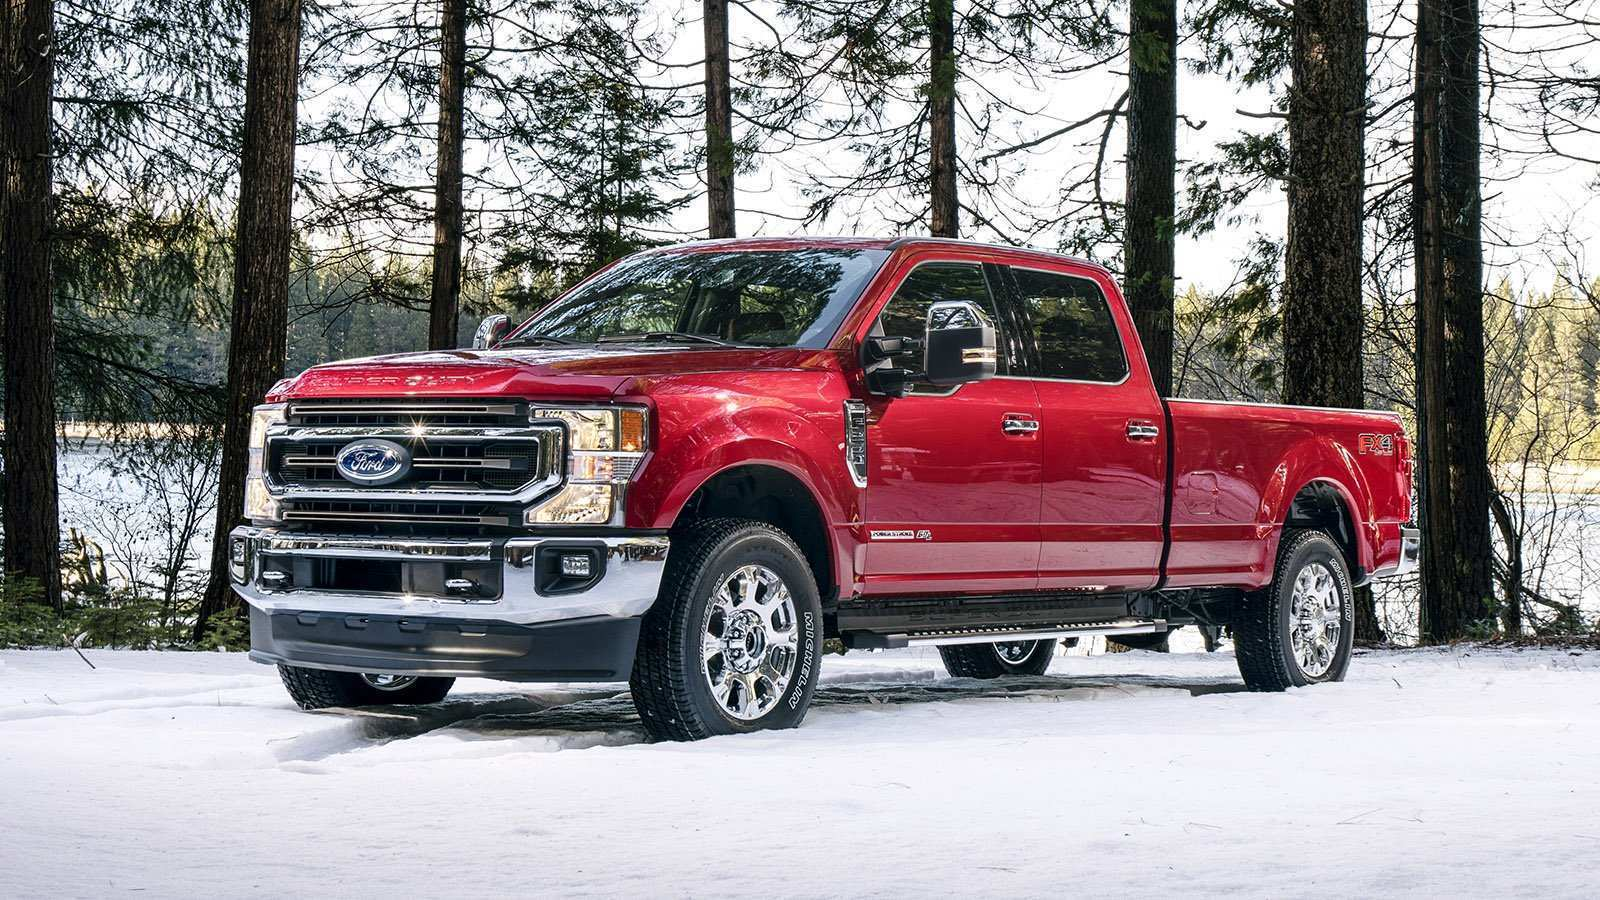 39 All New 2020 Ford F350 Diesel Pictures